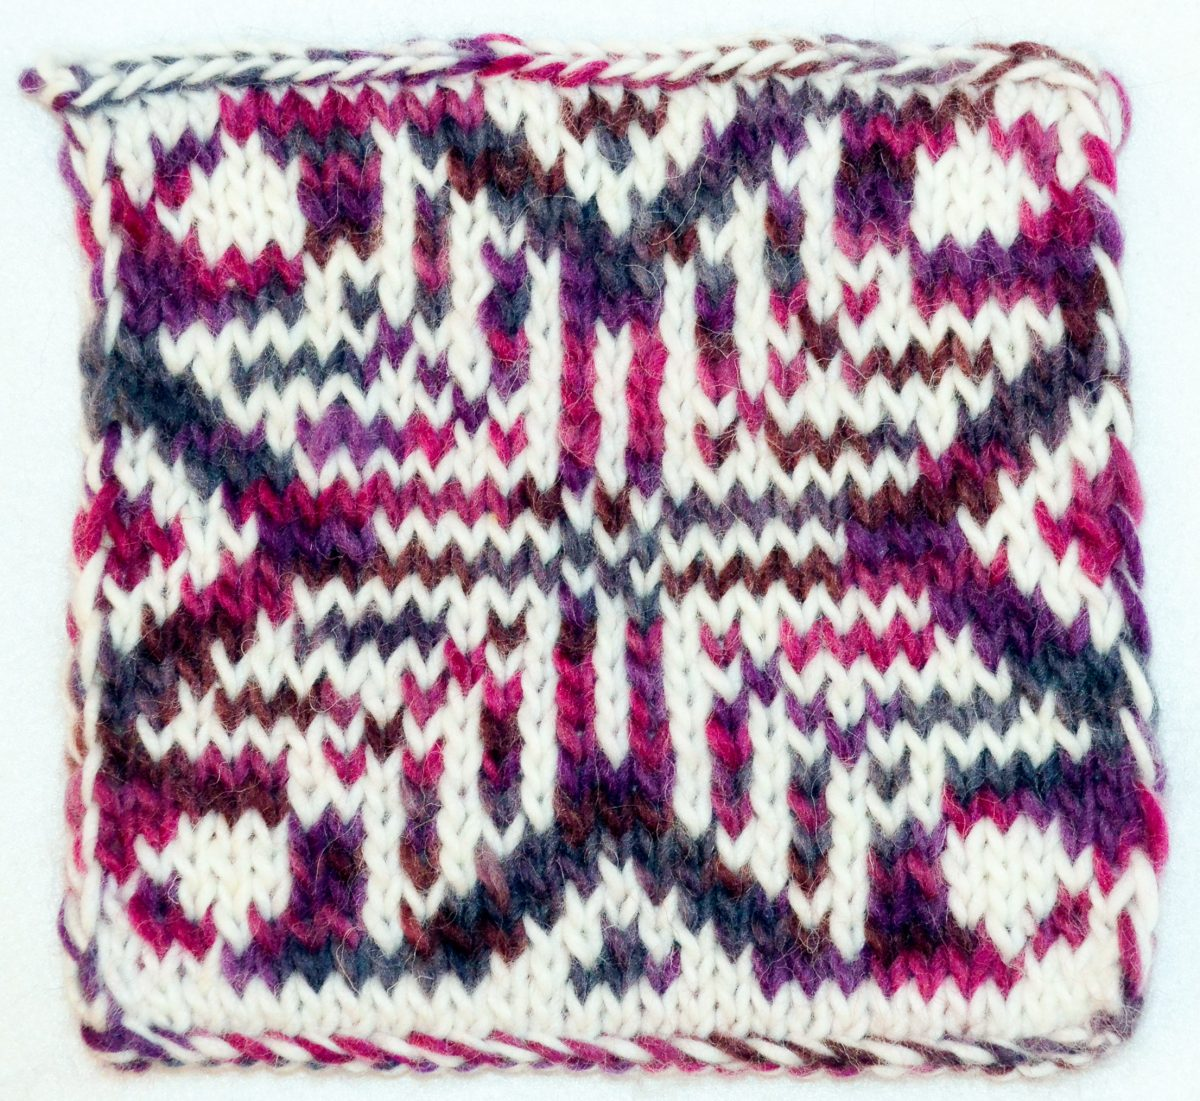 Double knit pattern - traditional motif